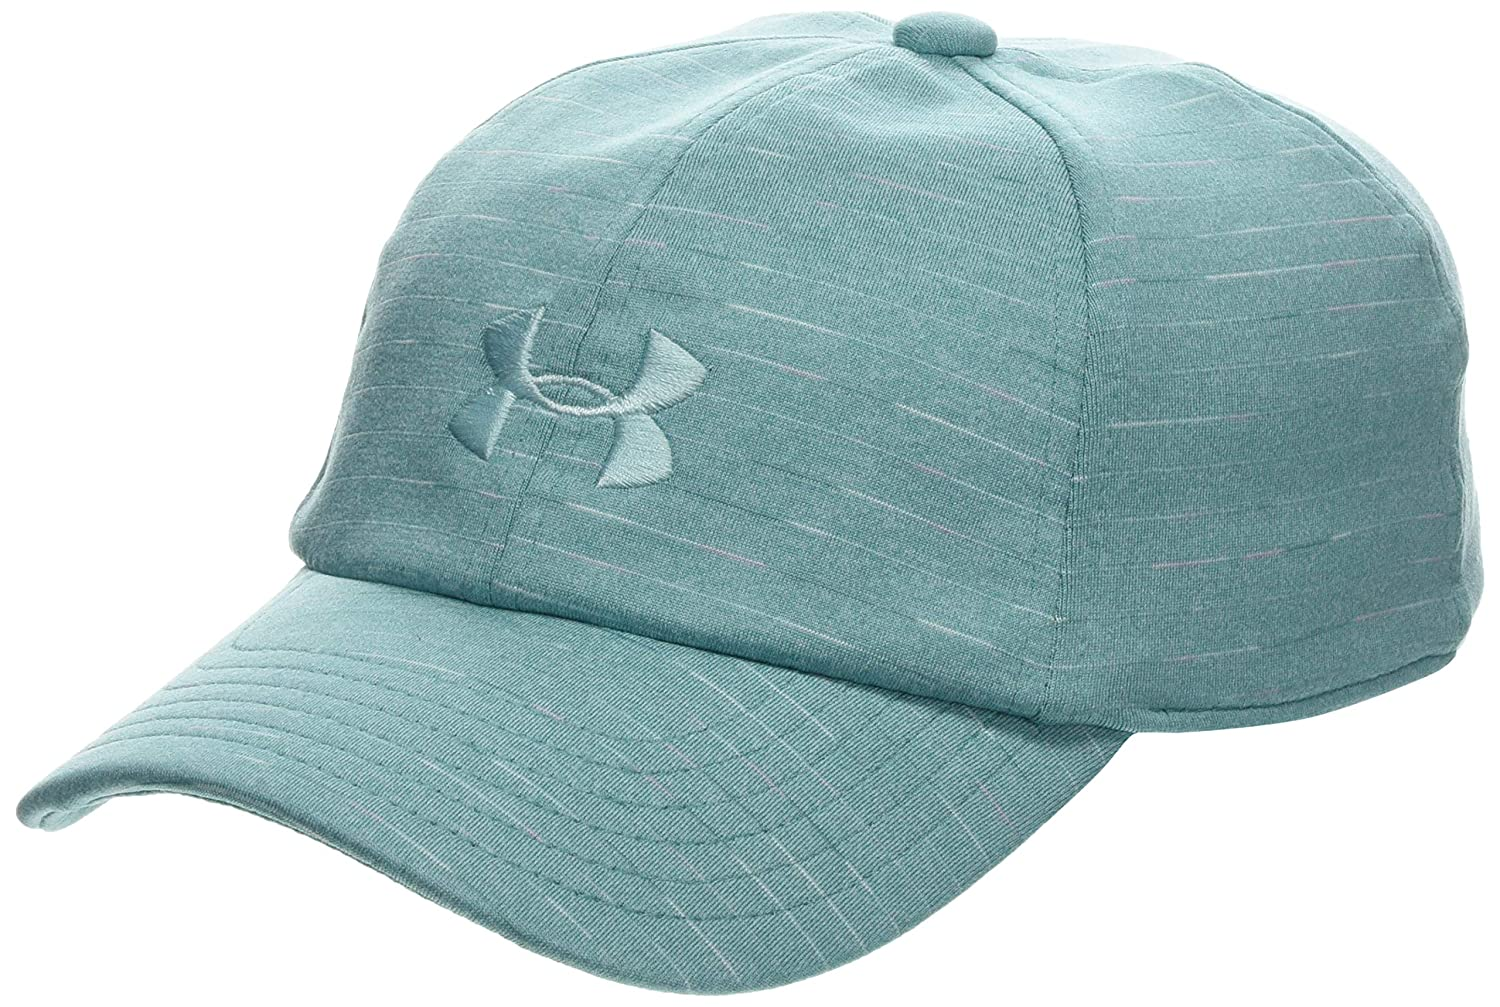 e1a4aae2dc9ea Amazon.com  Under Armour Space Dye Renegade Cap